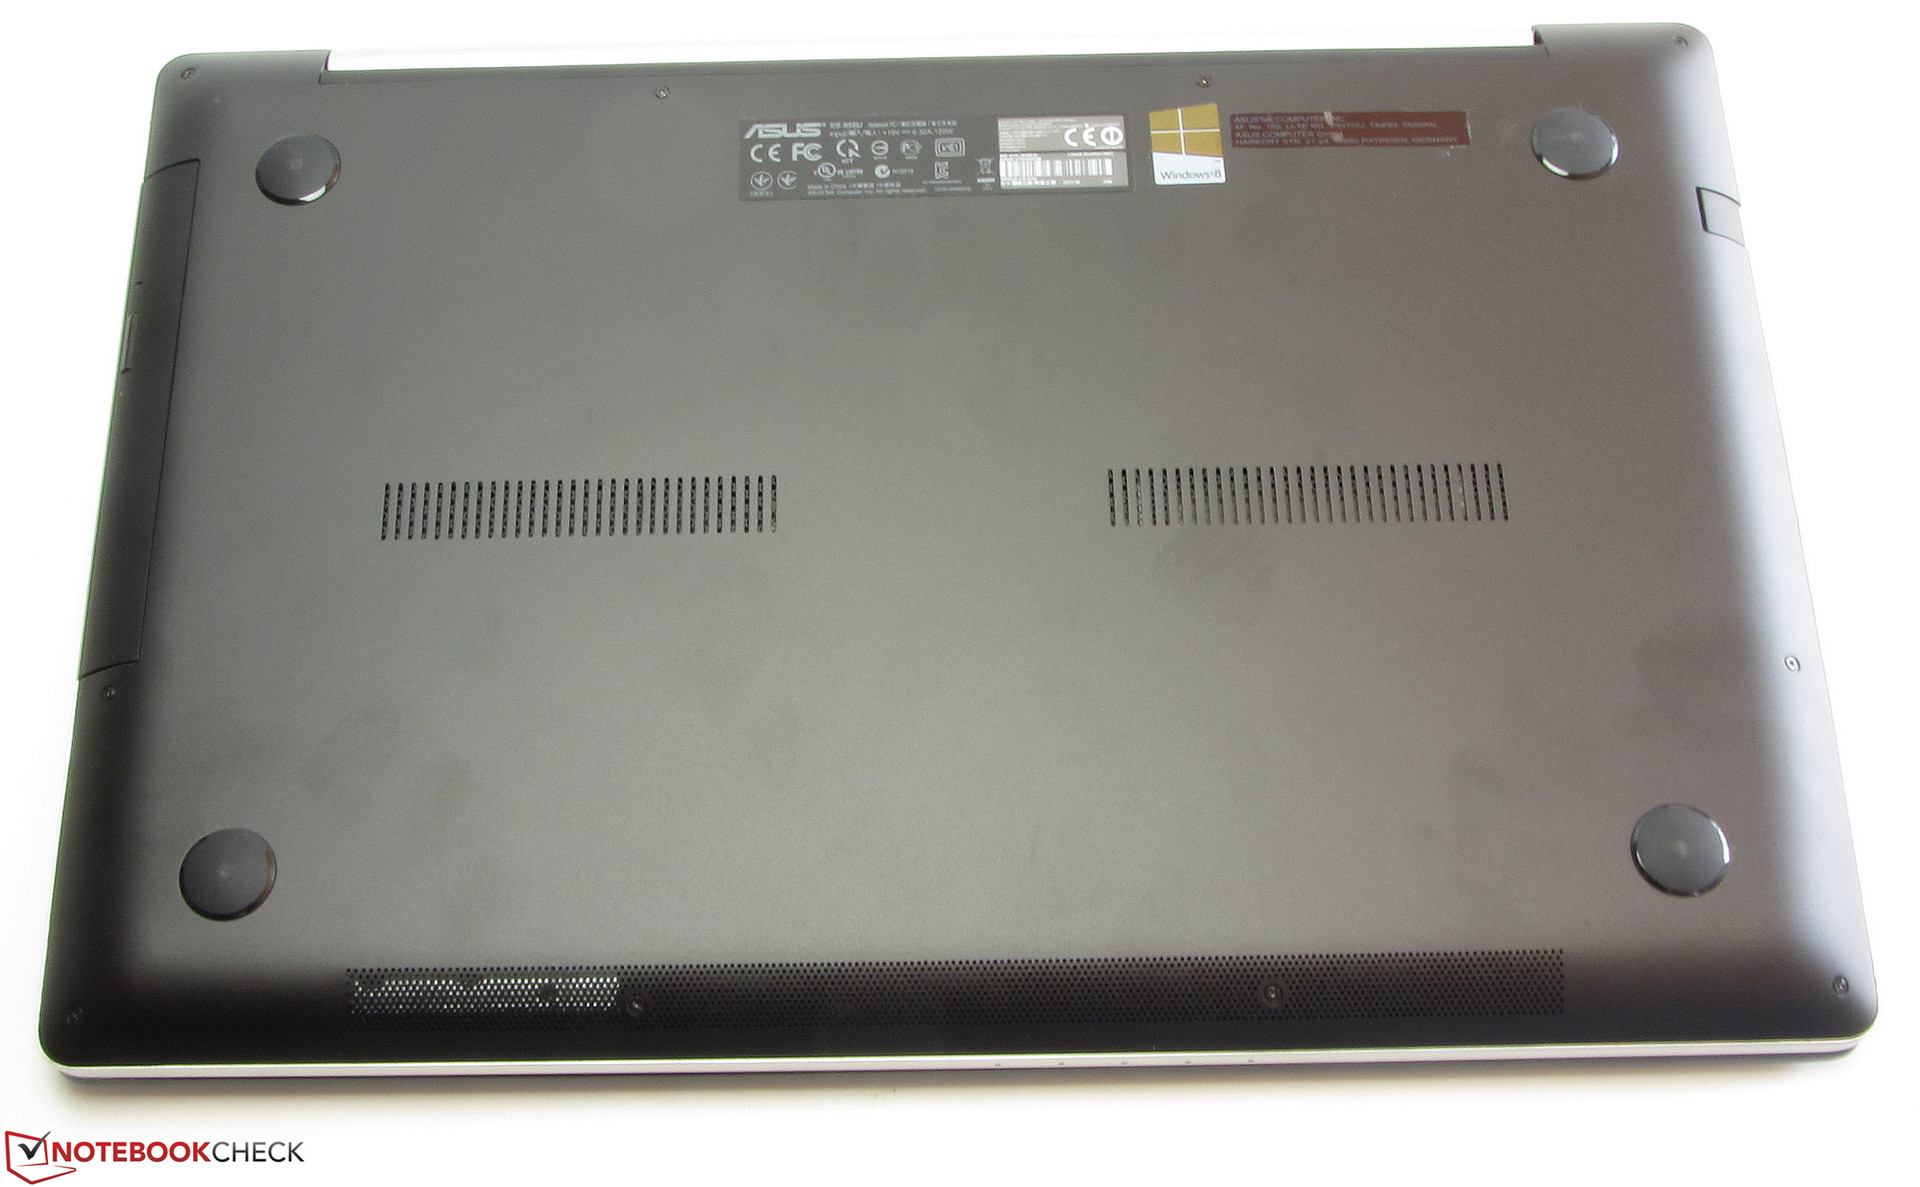 how to change cmos battery on asus b53s